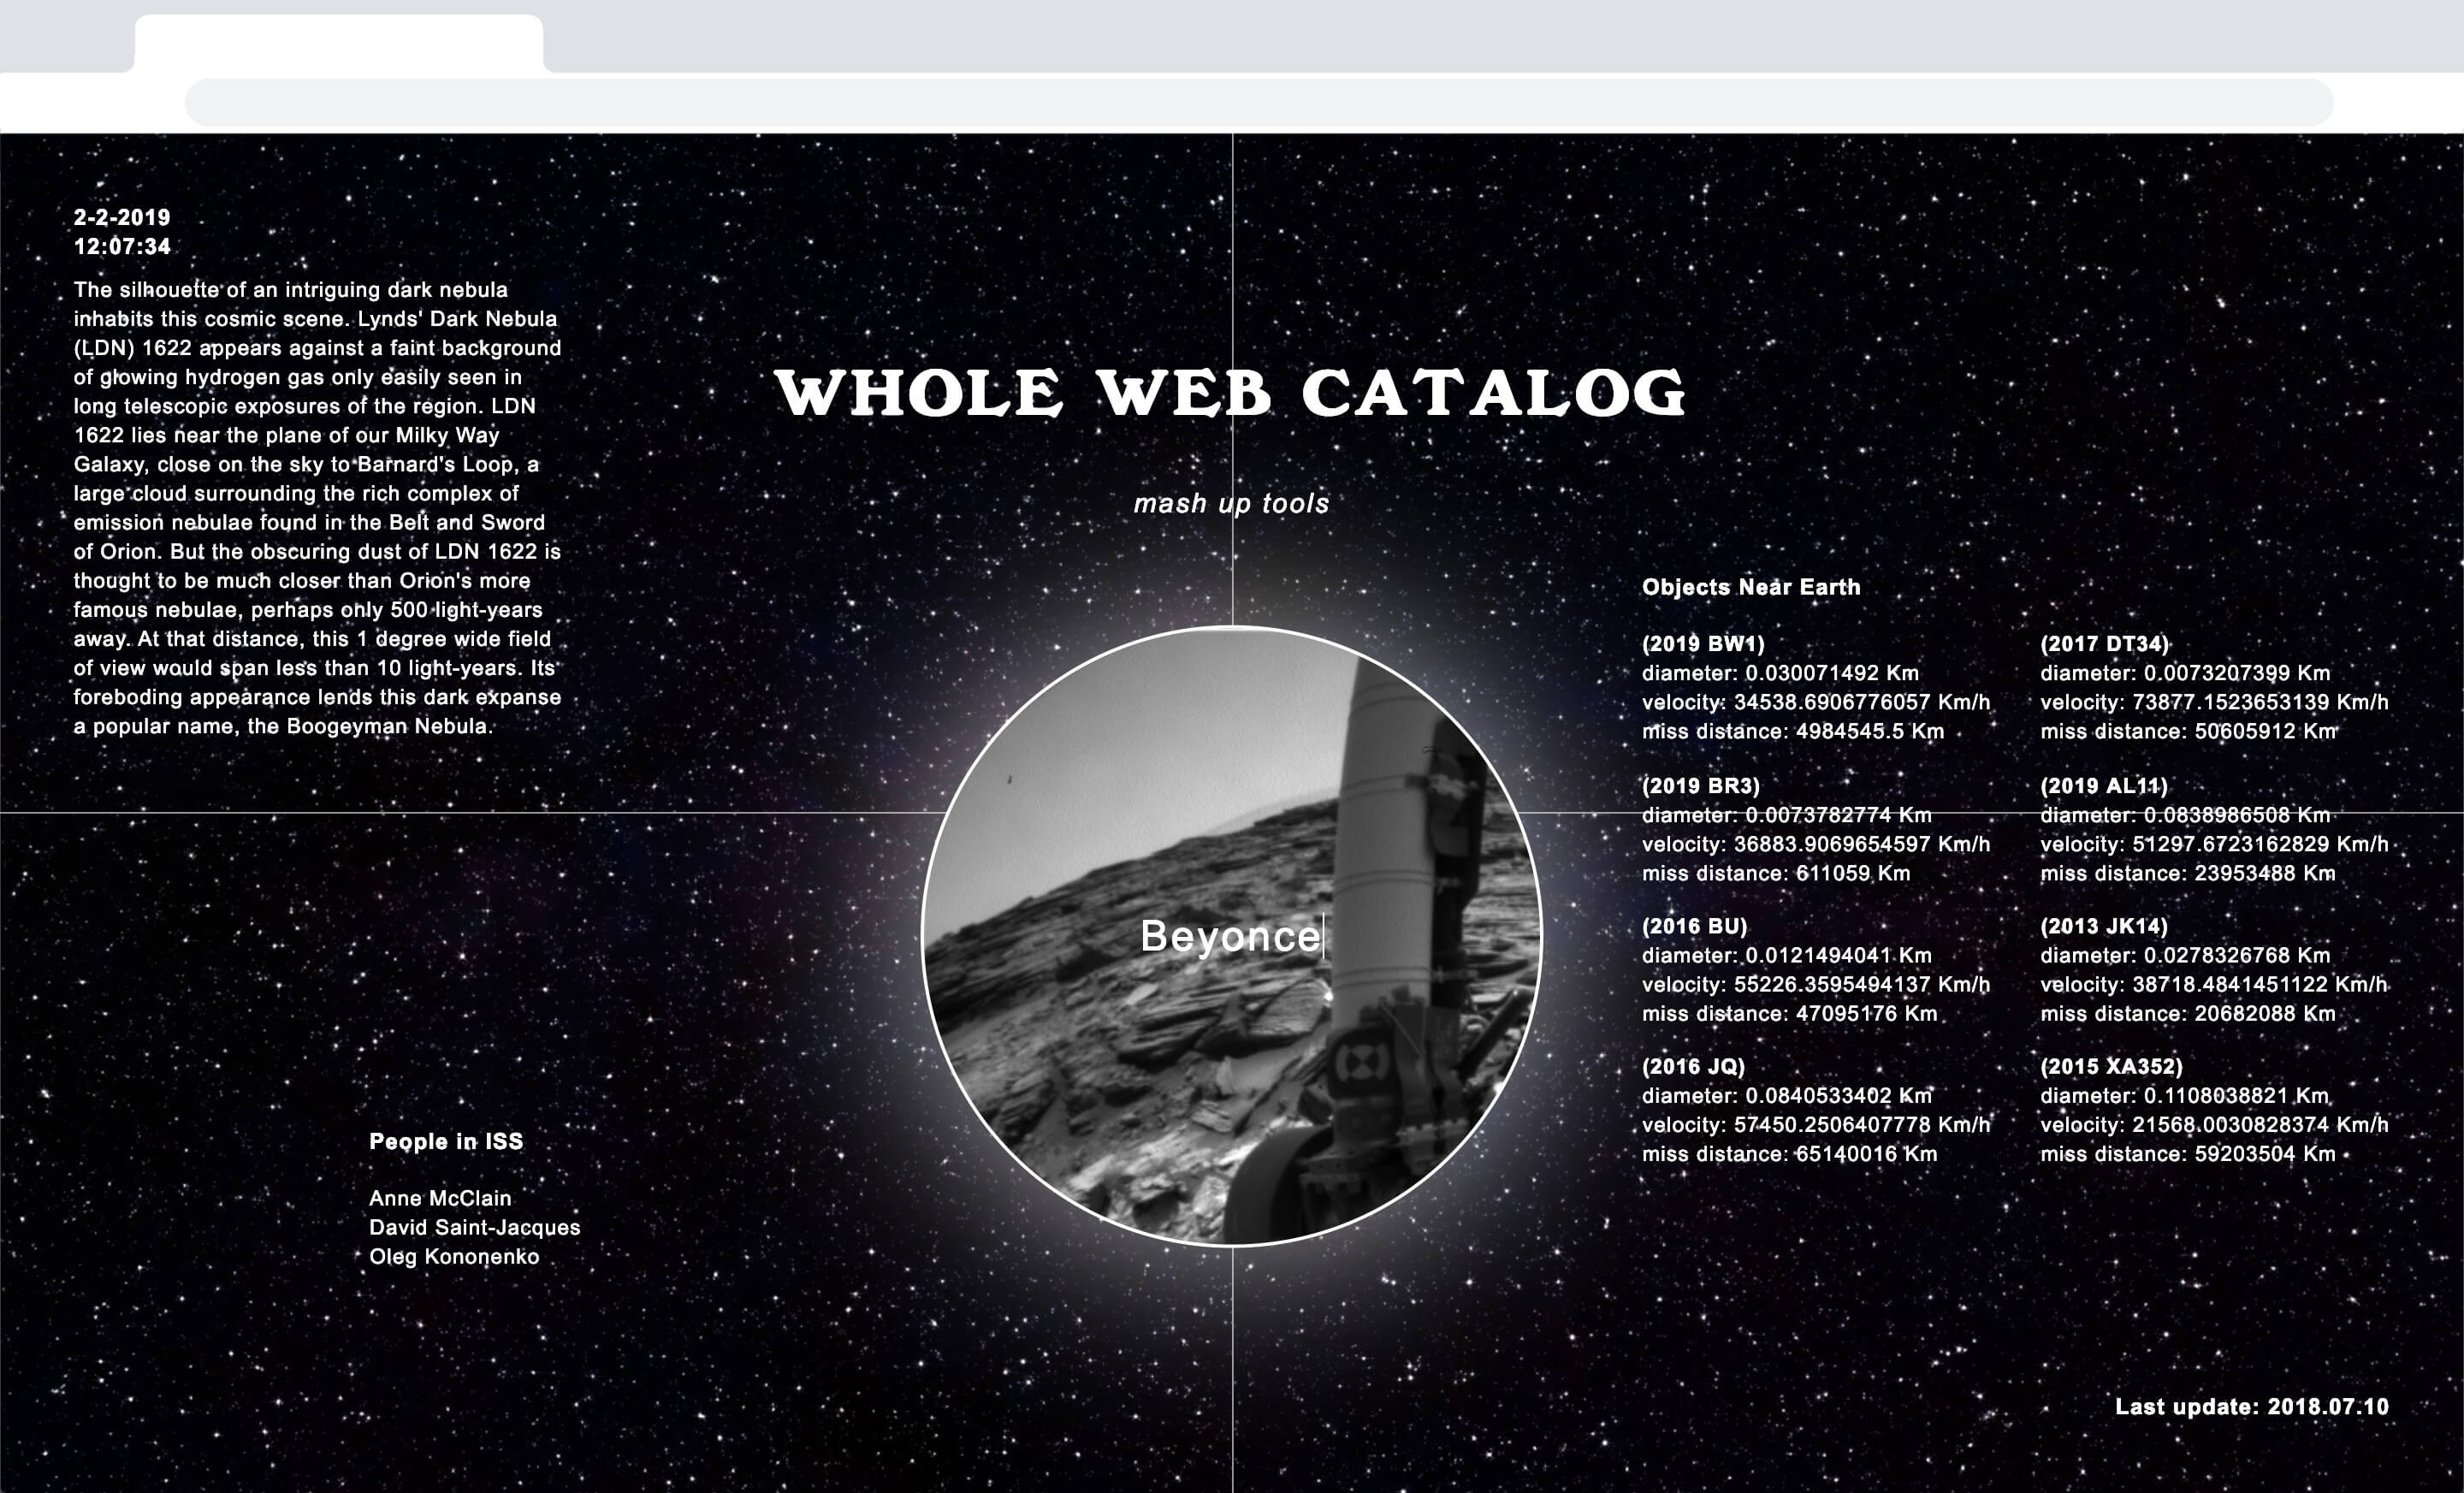 whole-web-catagog-2018-sara-orsi